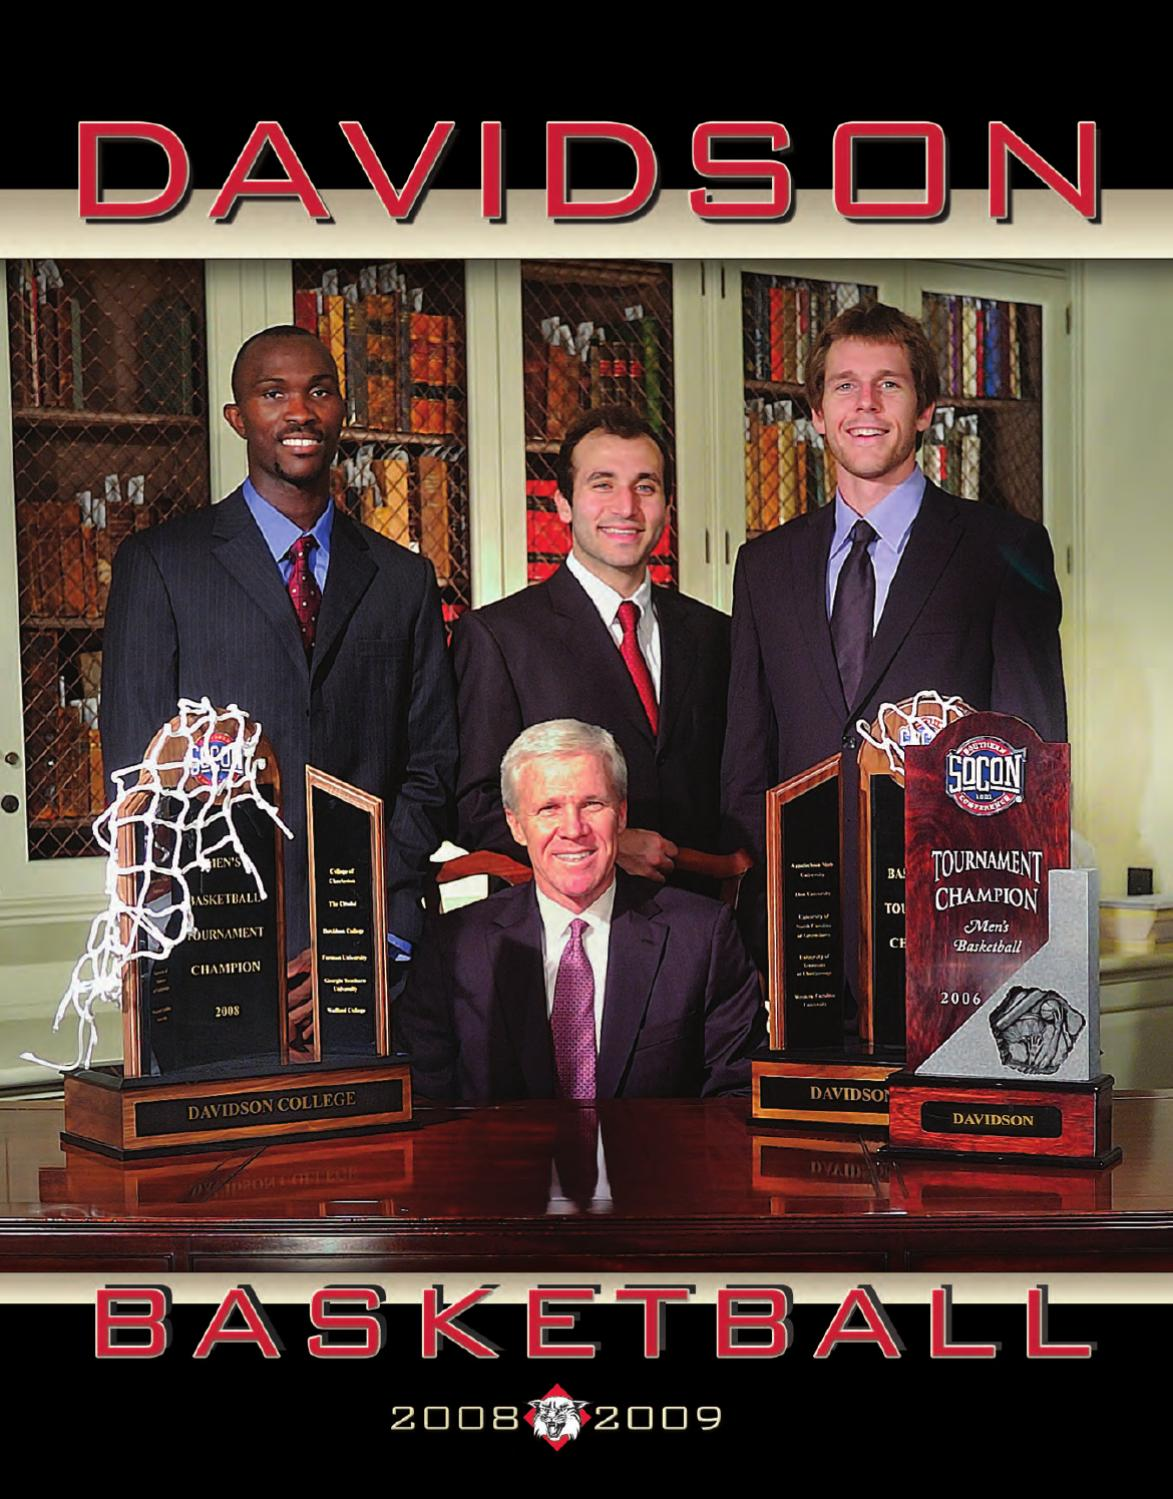 18dcbbe71adc 2008-09 Davidson Men s Basketball Media Guide by Marc Gignac - issuu